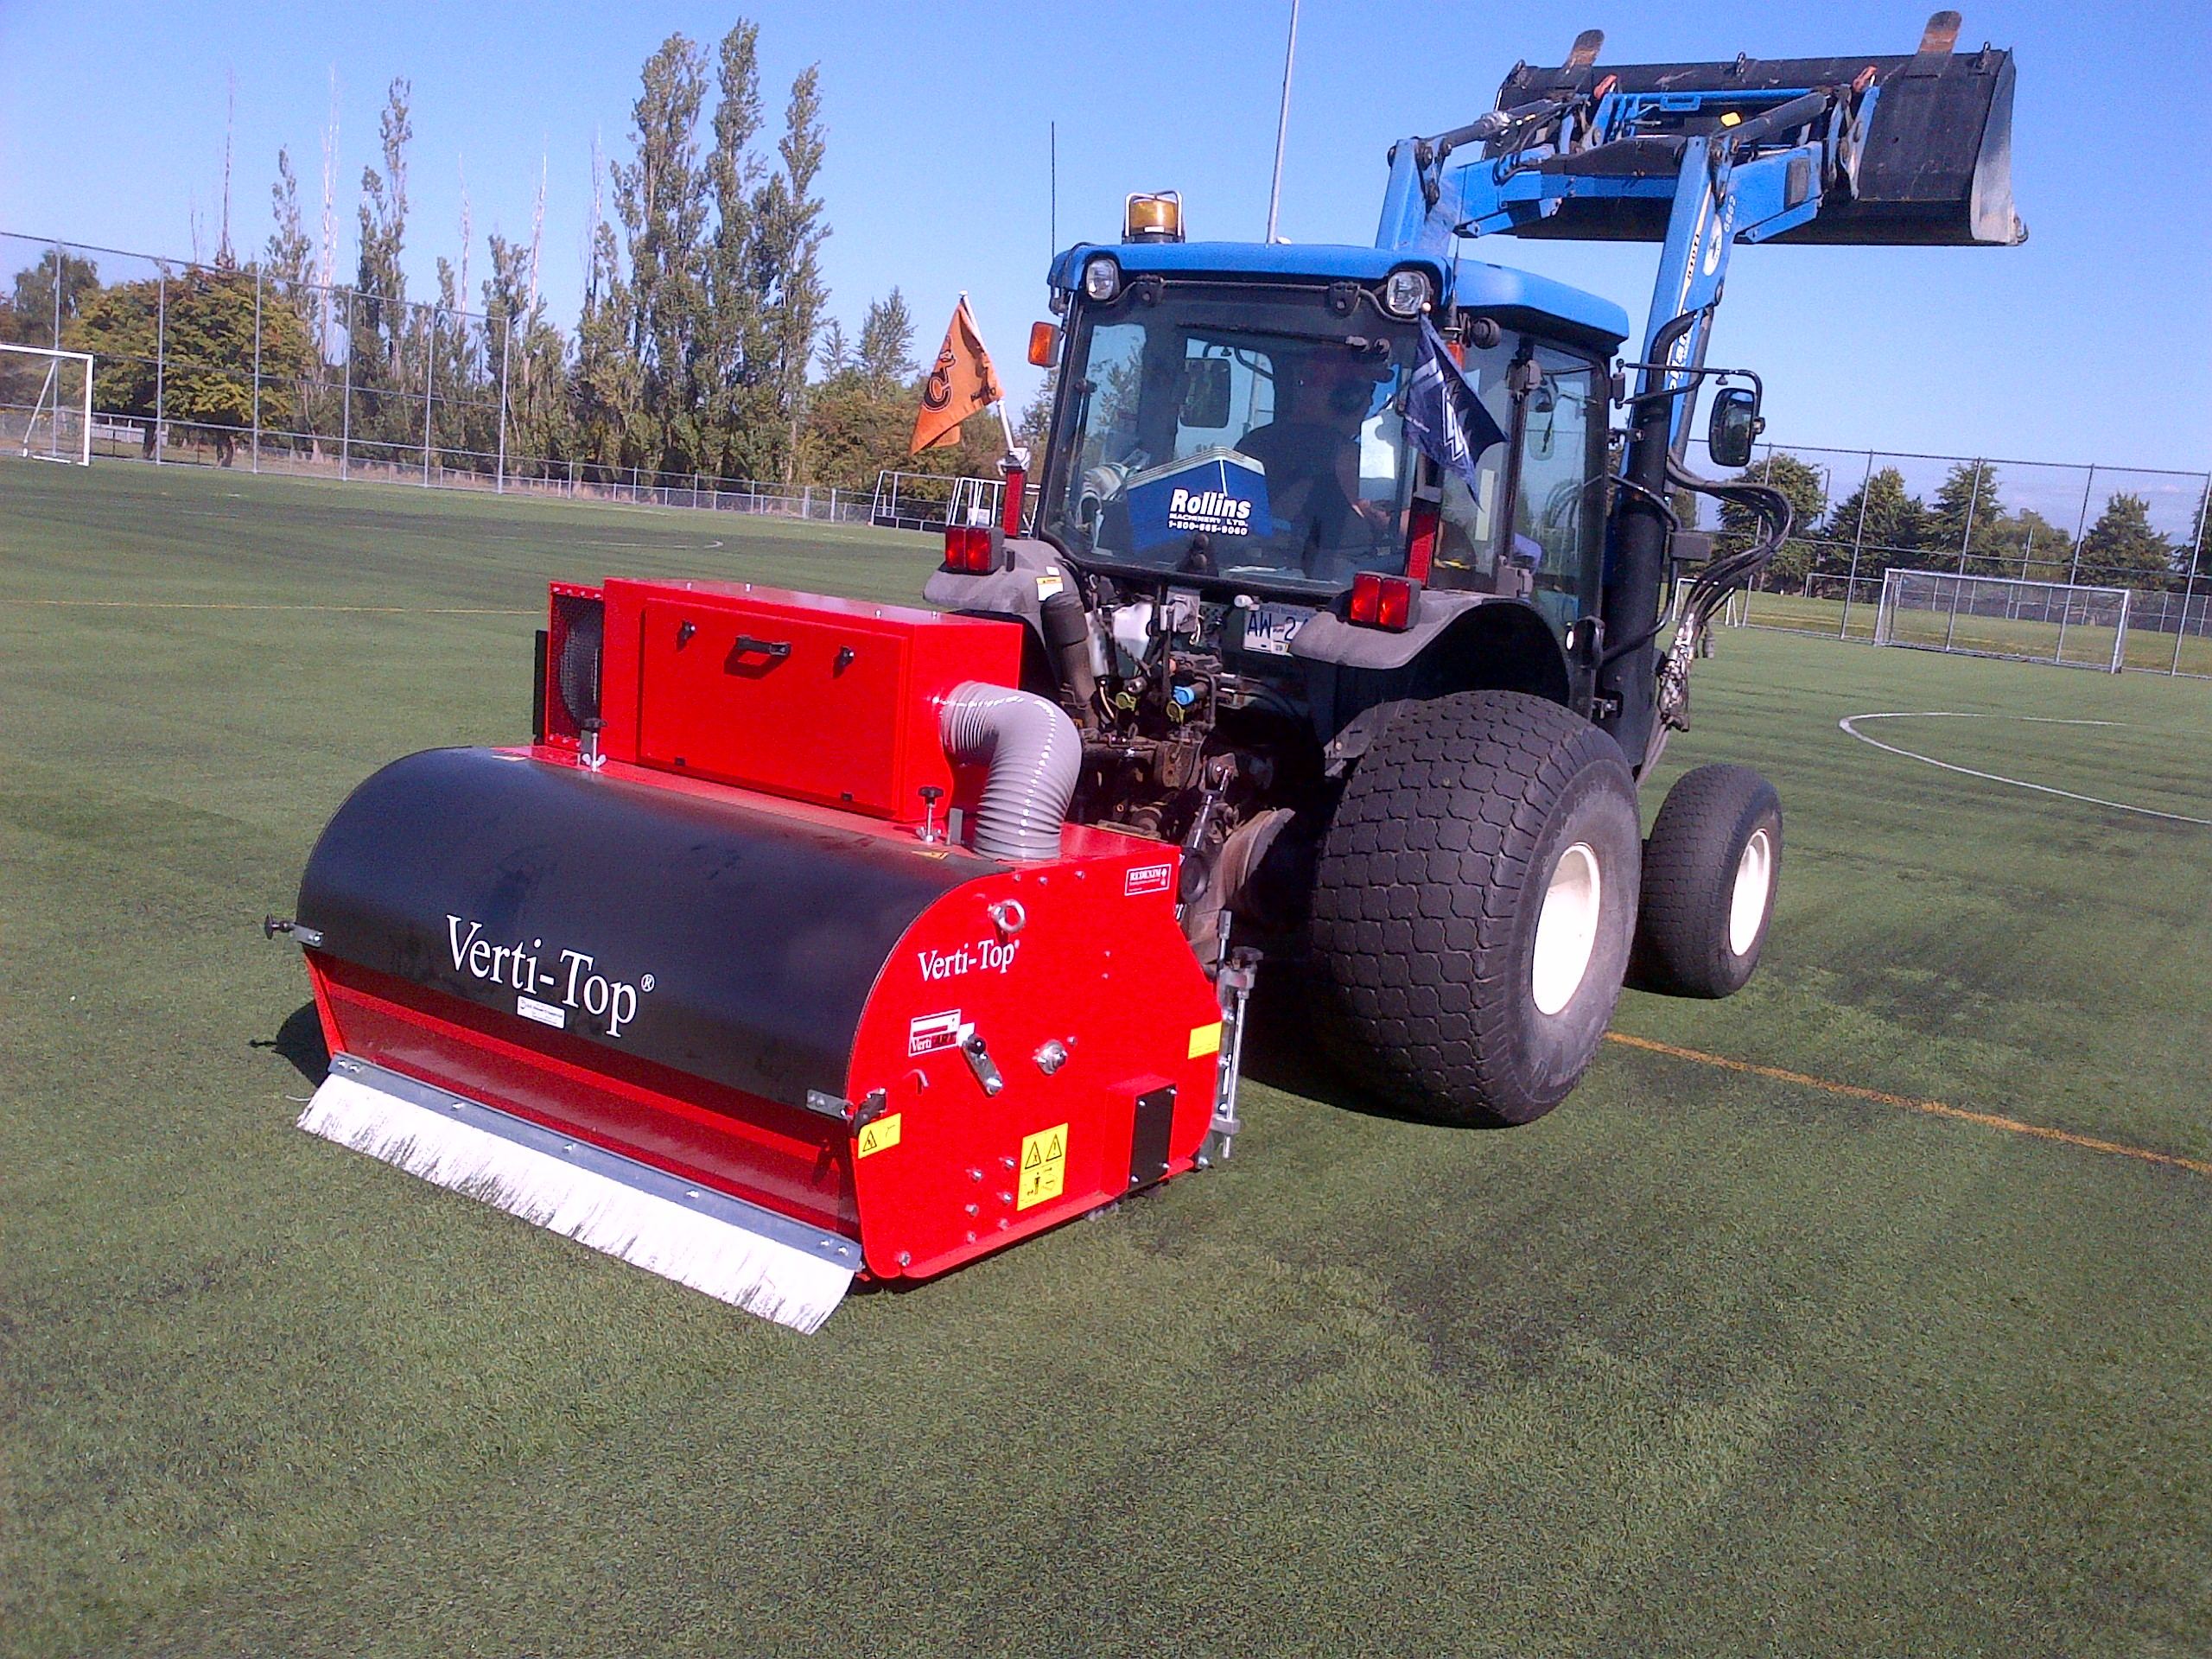 Synthetic Turf Maintenance Equipment Armower Com